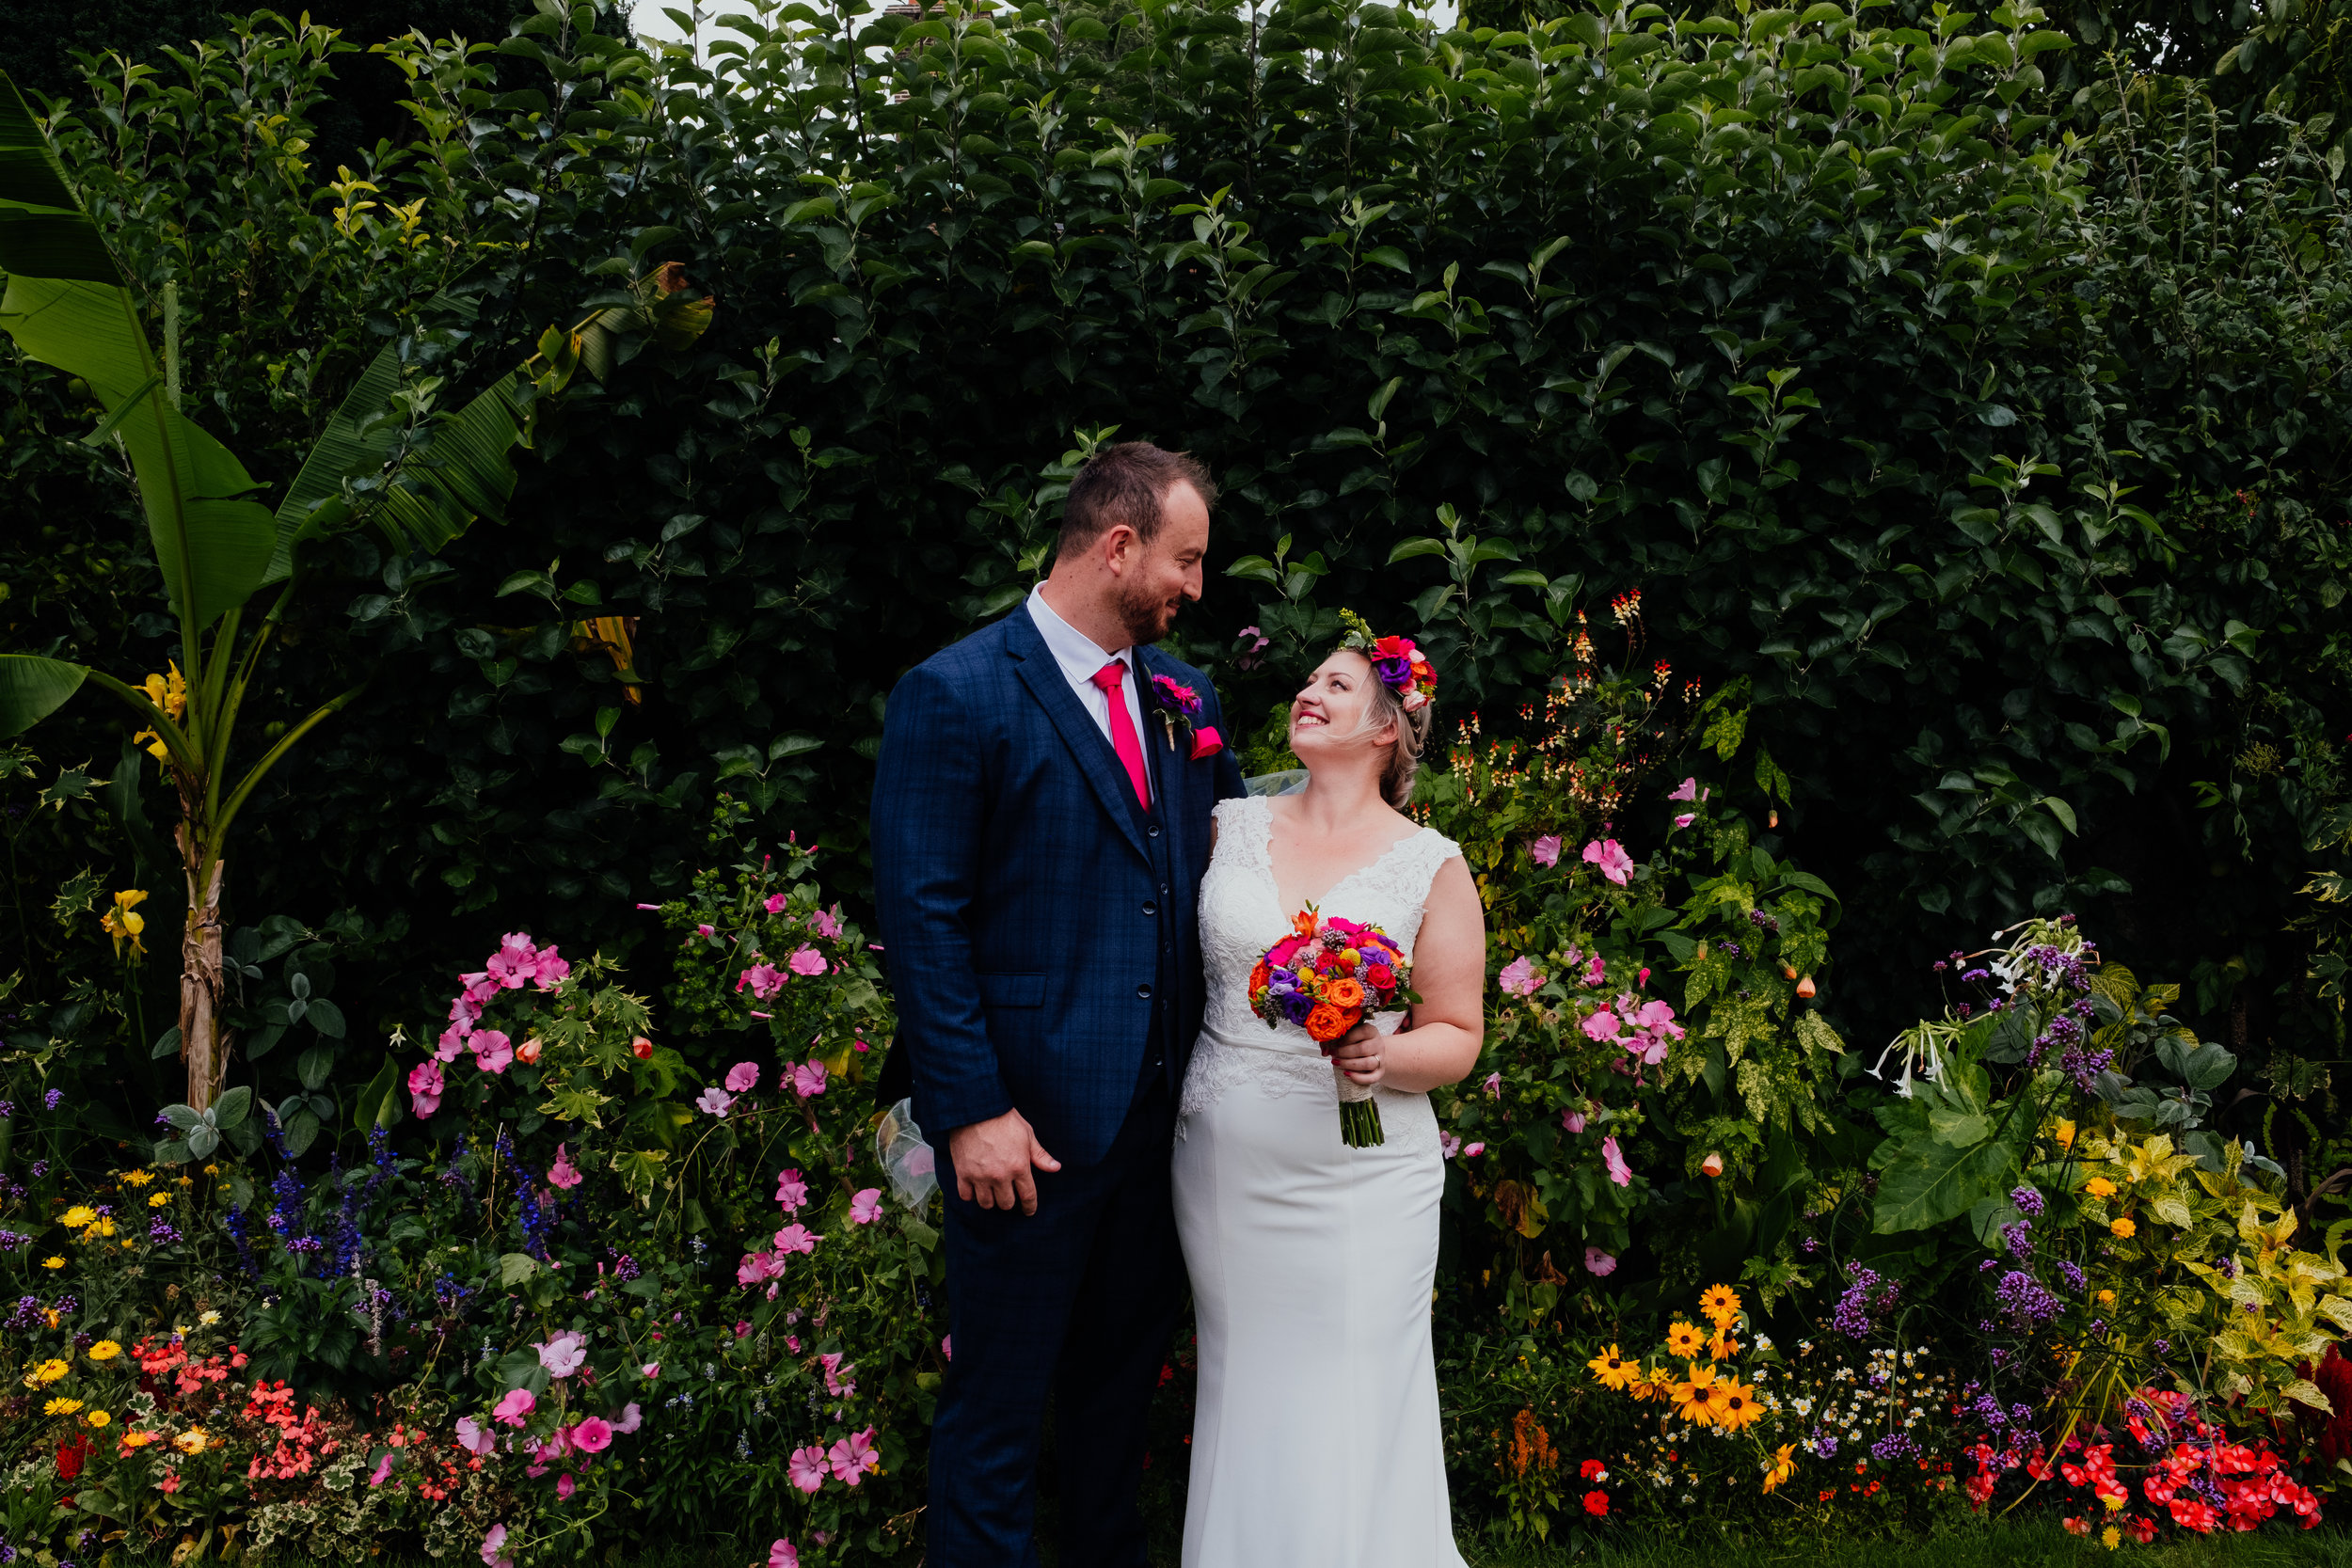 Bride and Groom smiling at each other surrounded by flowers